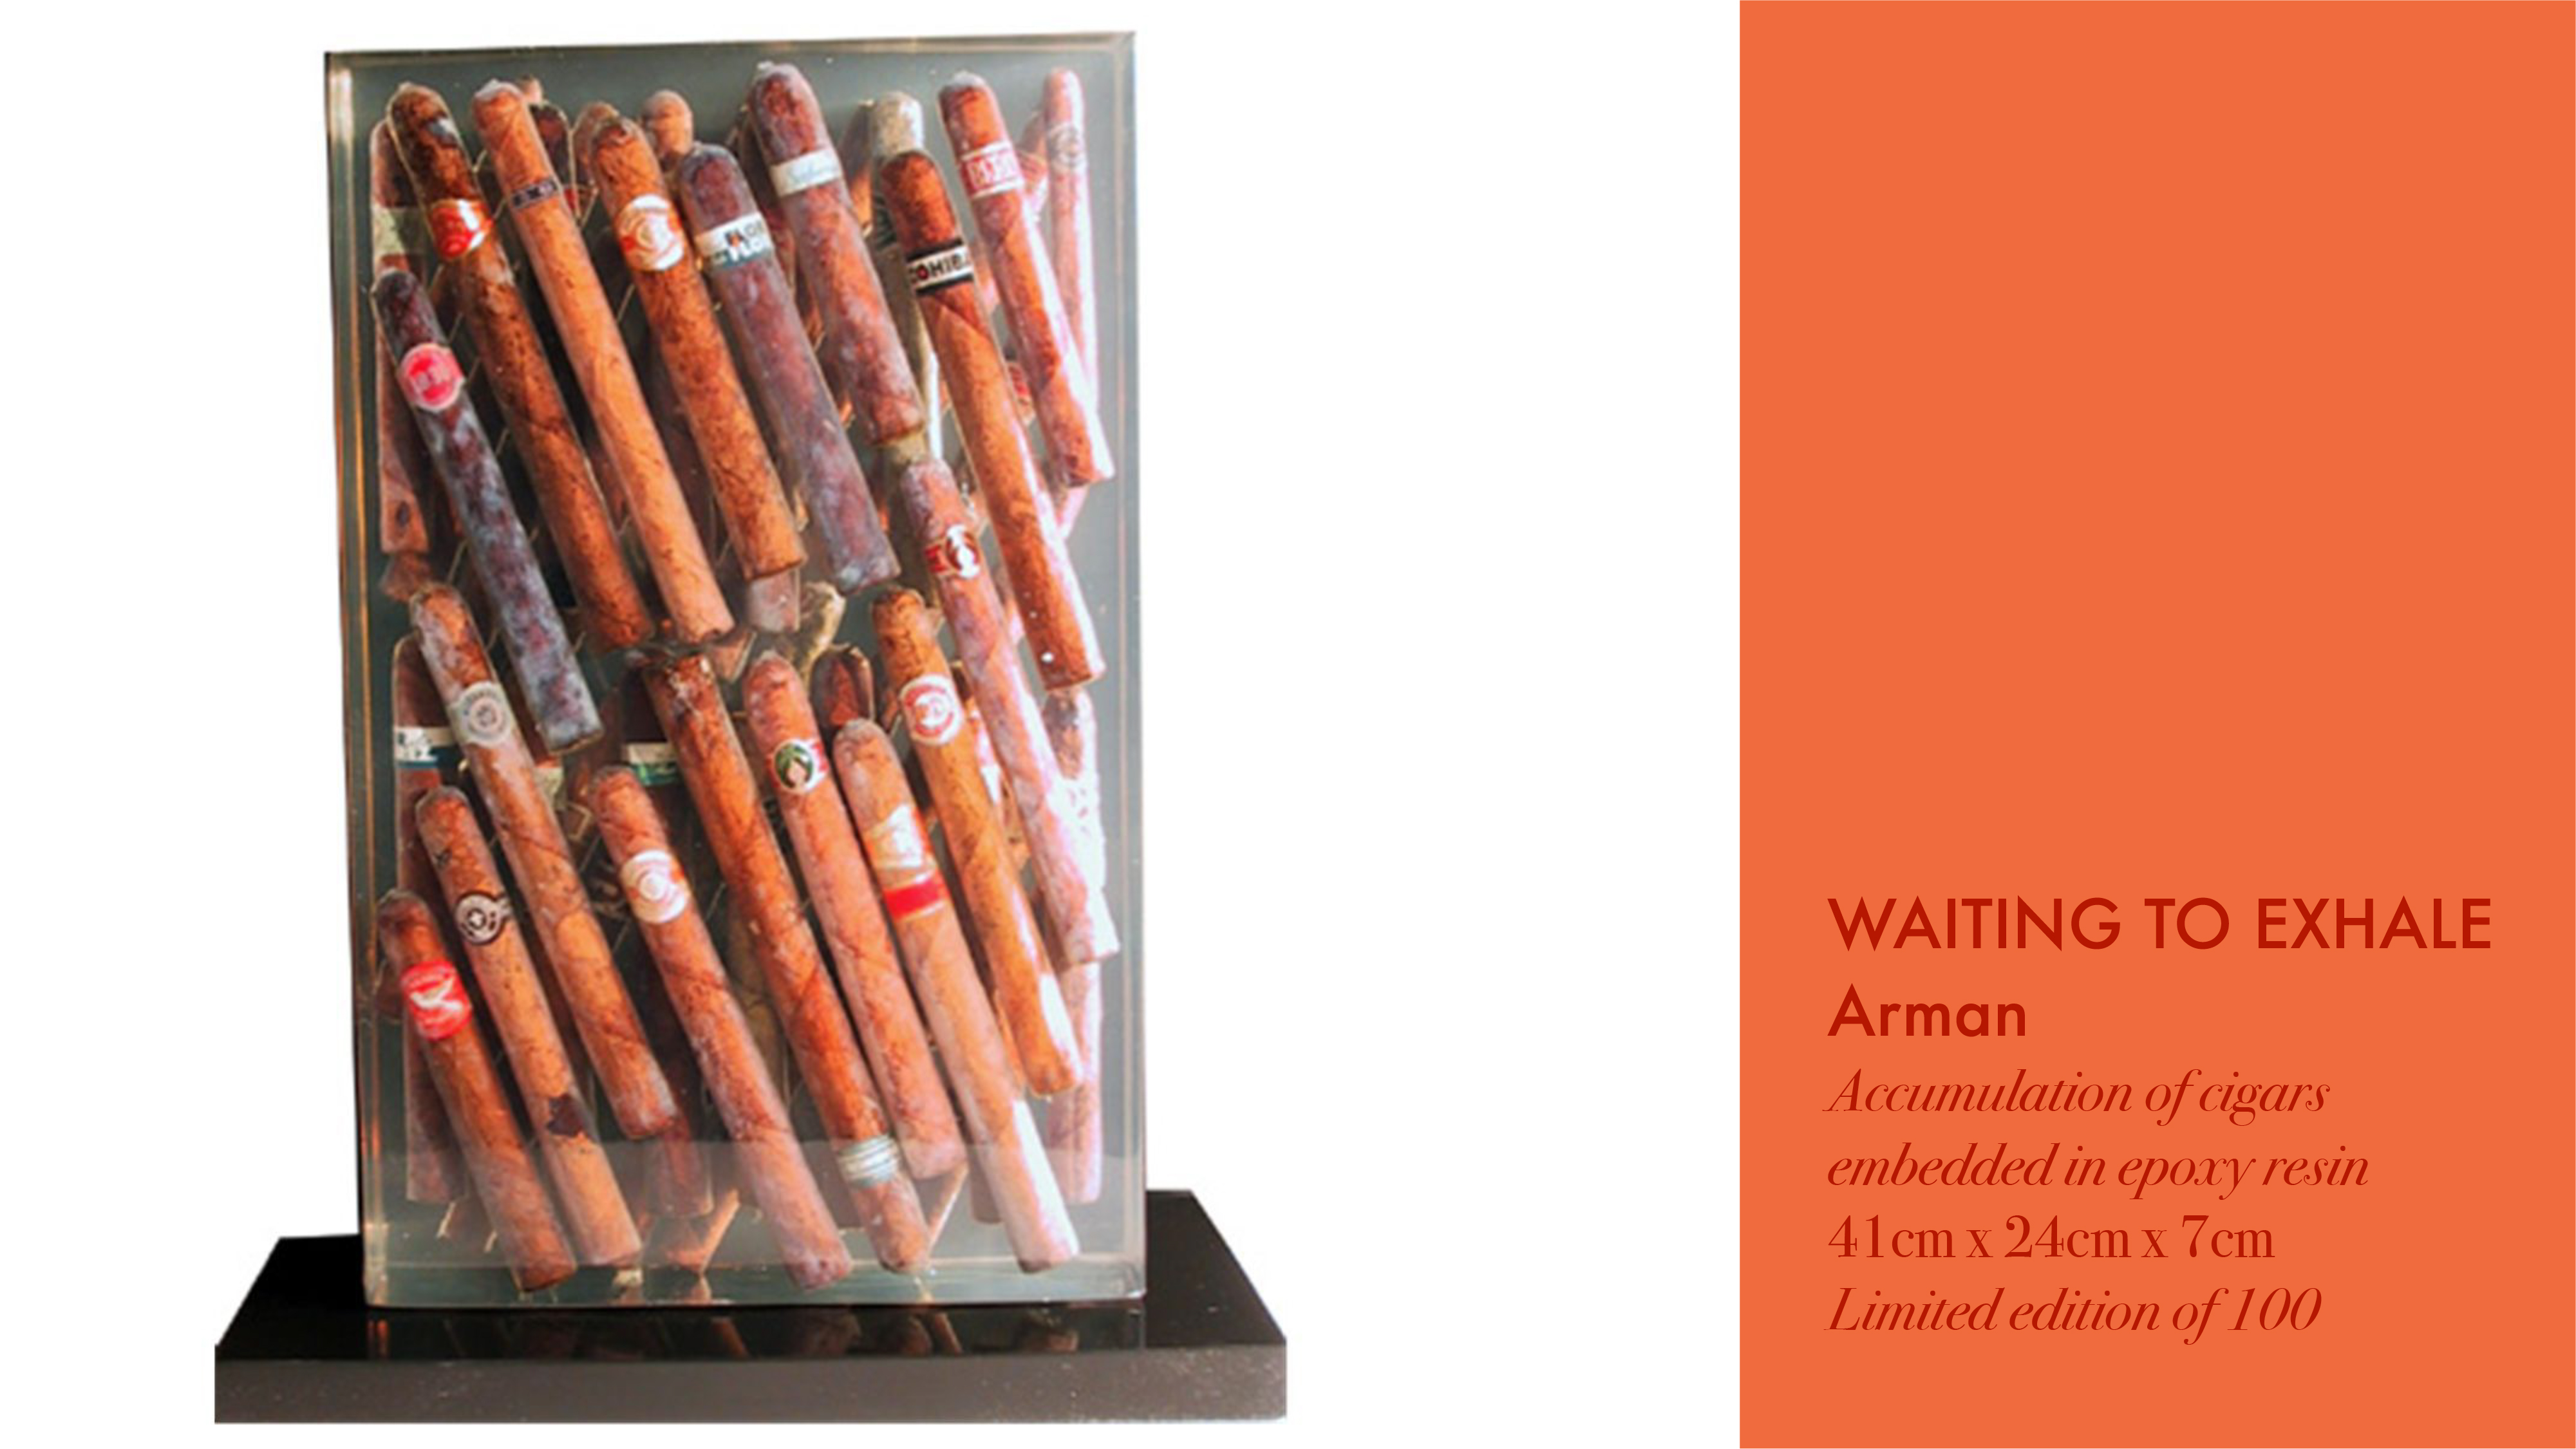 """Arman's sculpture """"Waiting to Exhale"""" made by accumulating cigars and embedding them on epoxy resin"""